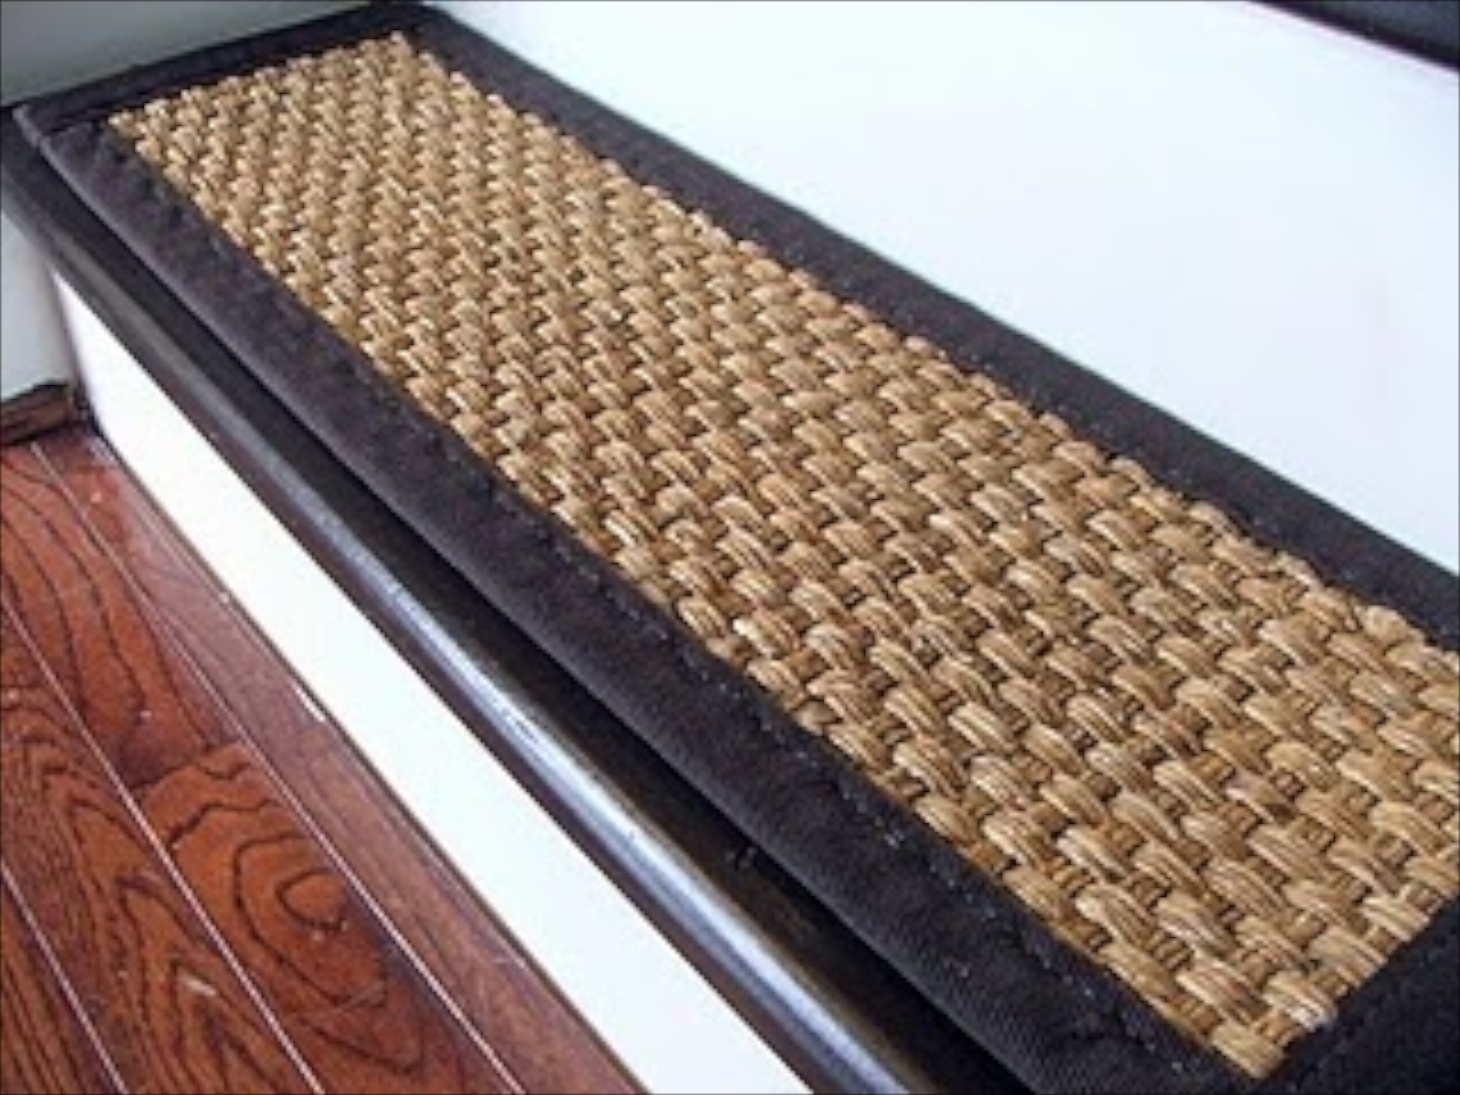 Decor Carpet Stair Tread Covers And Laminate Stair Tread Covers With Regard To Carpet Step Covers For Stairs (#3 of 20)